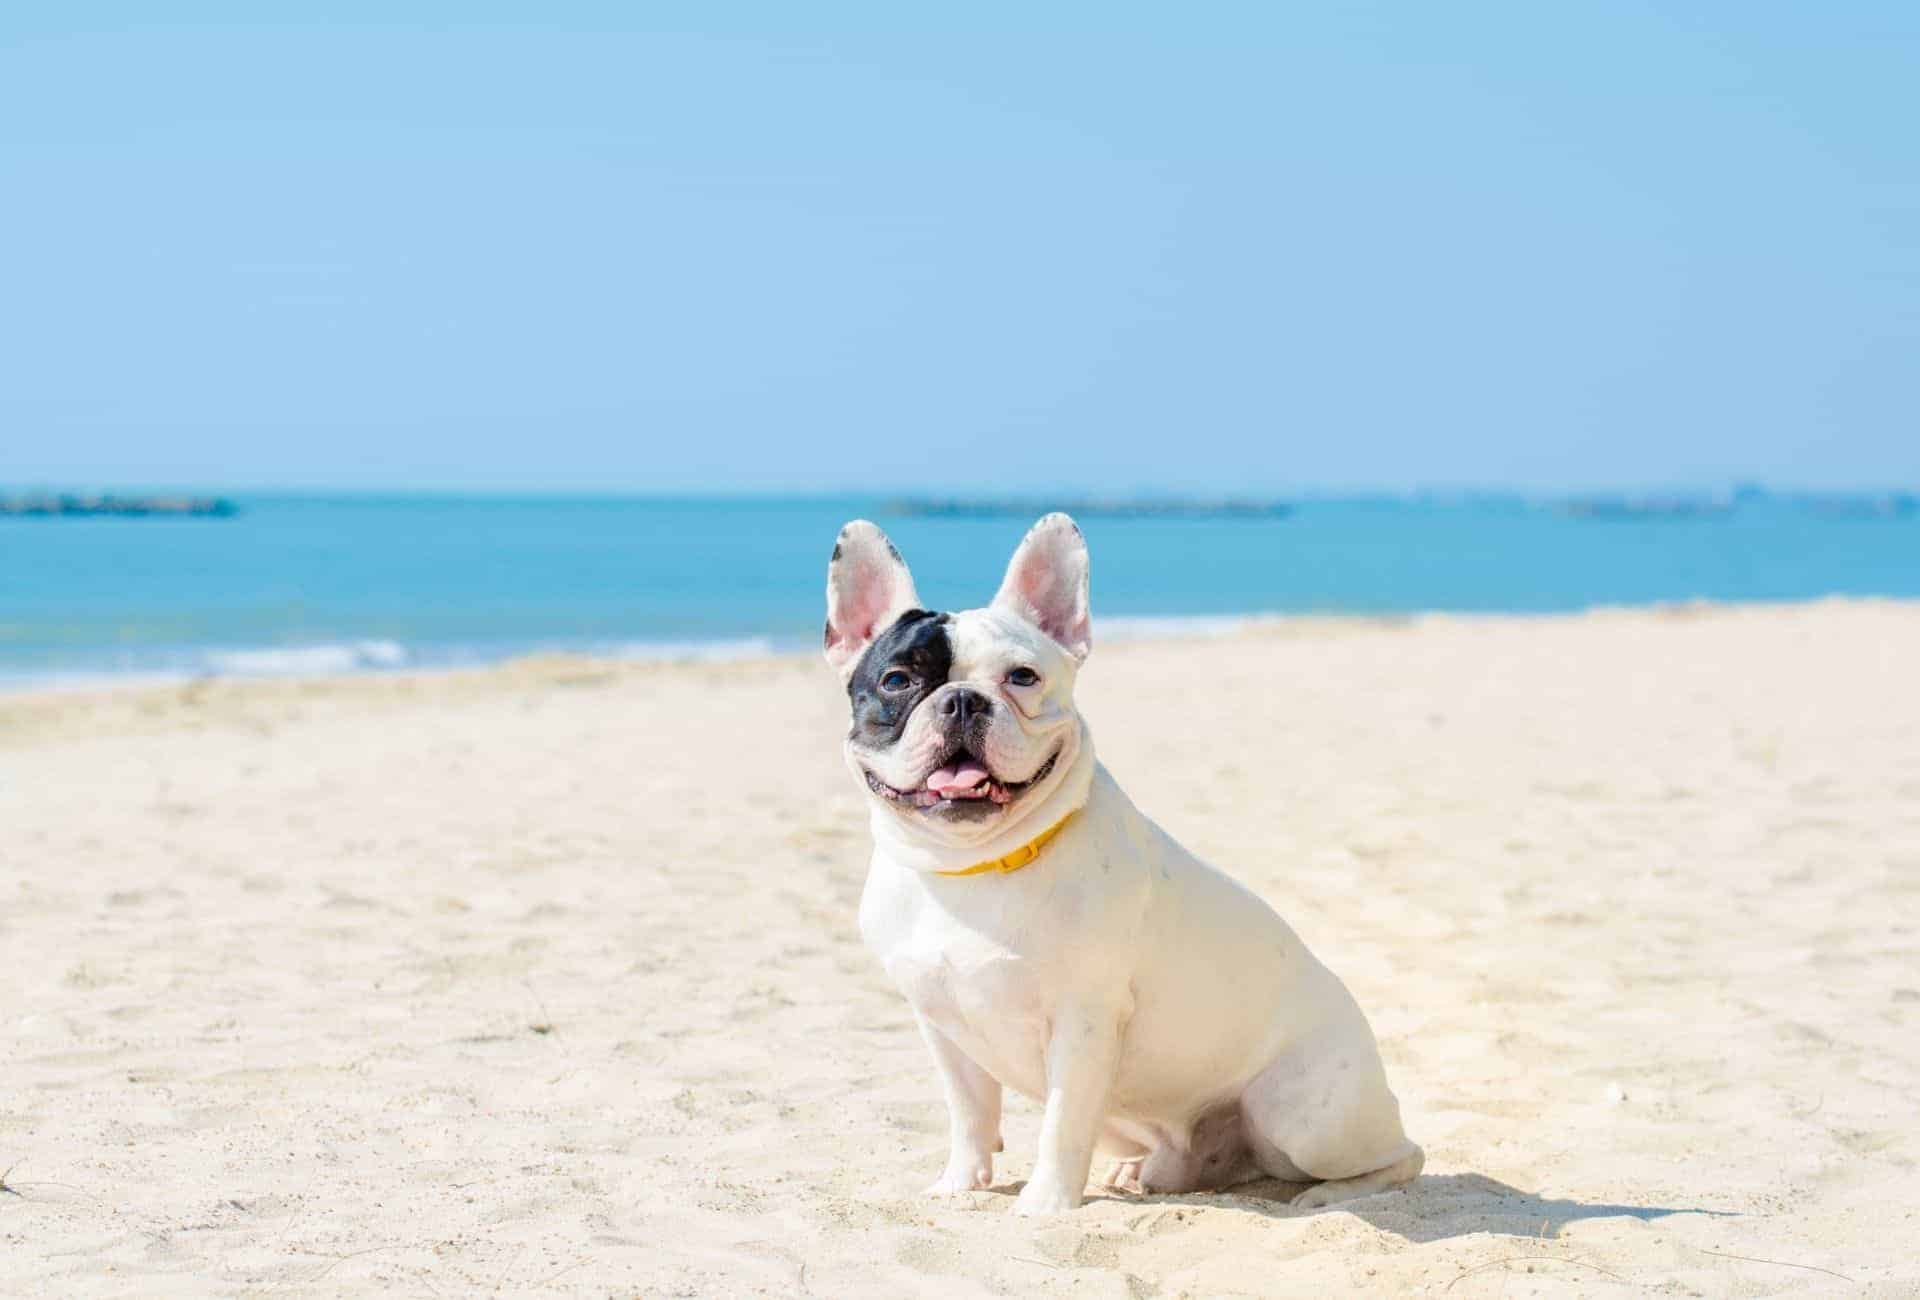 White French Bulldog with black splotch around eye is on a sandy beach, showing that exercise and enrichment extend the lifespan.